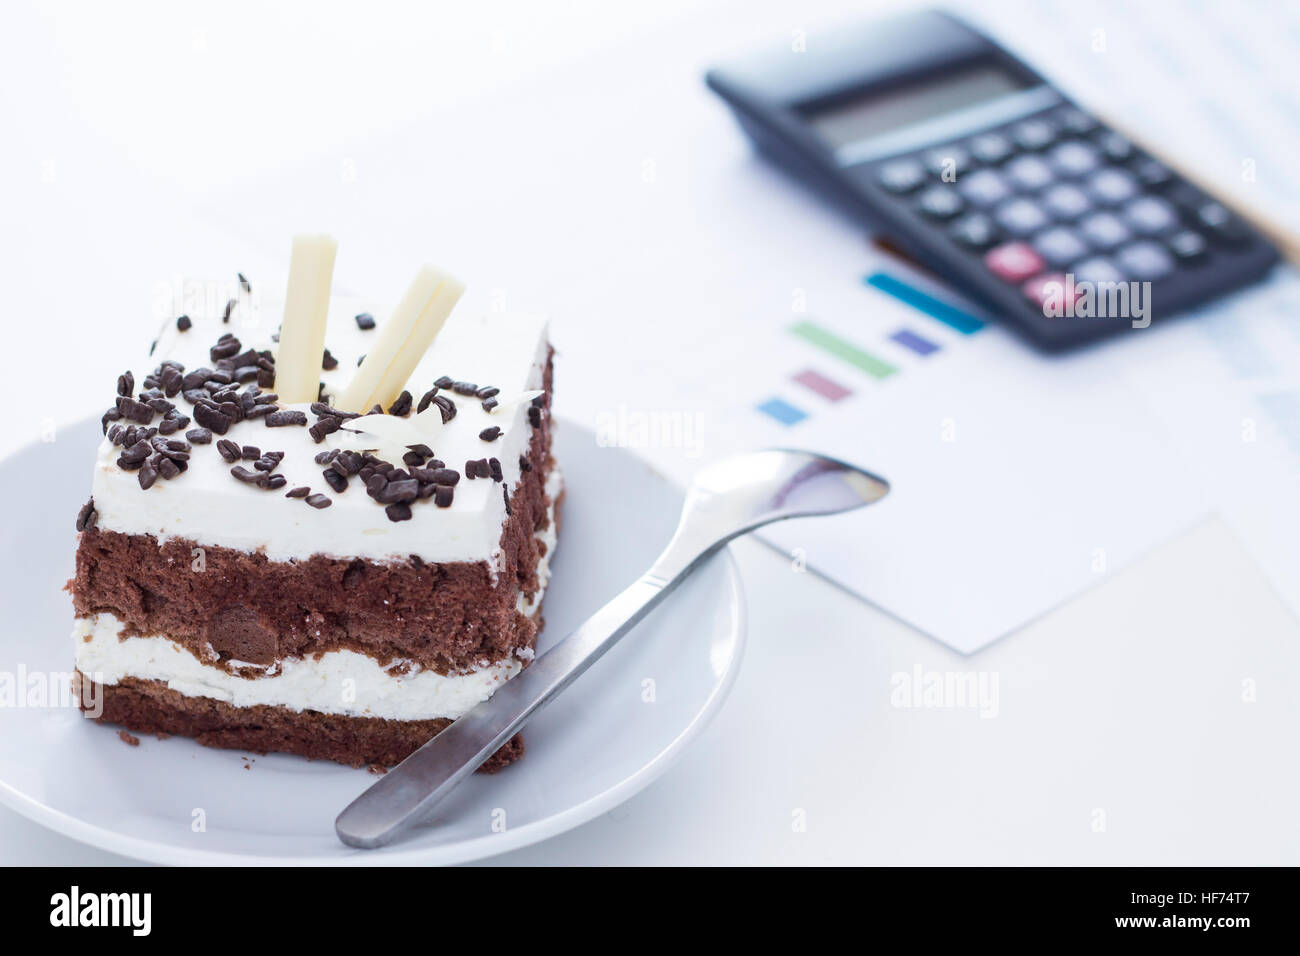 Time for something sweet. Sponge cake with chocolate on the desk. - Stock Image